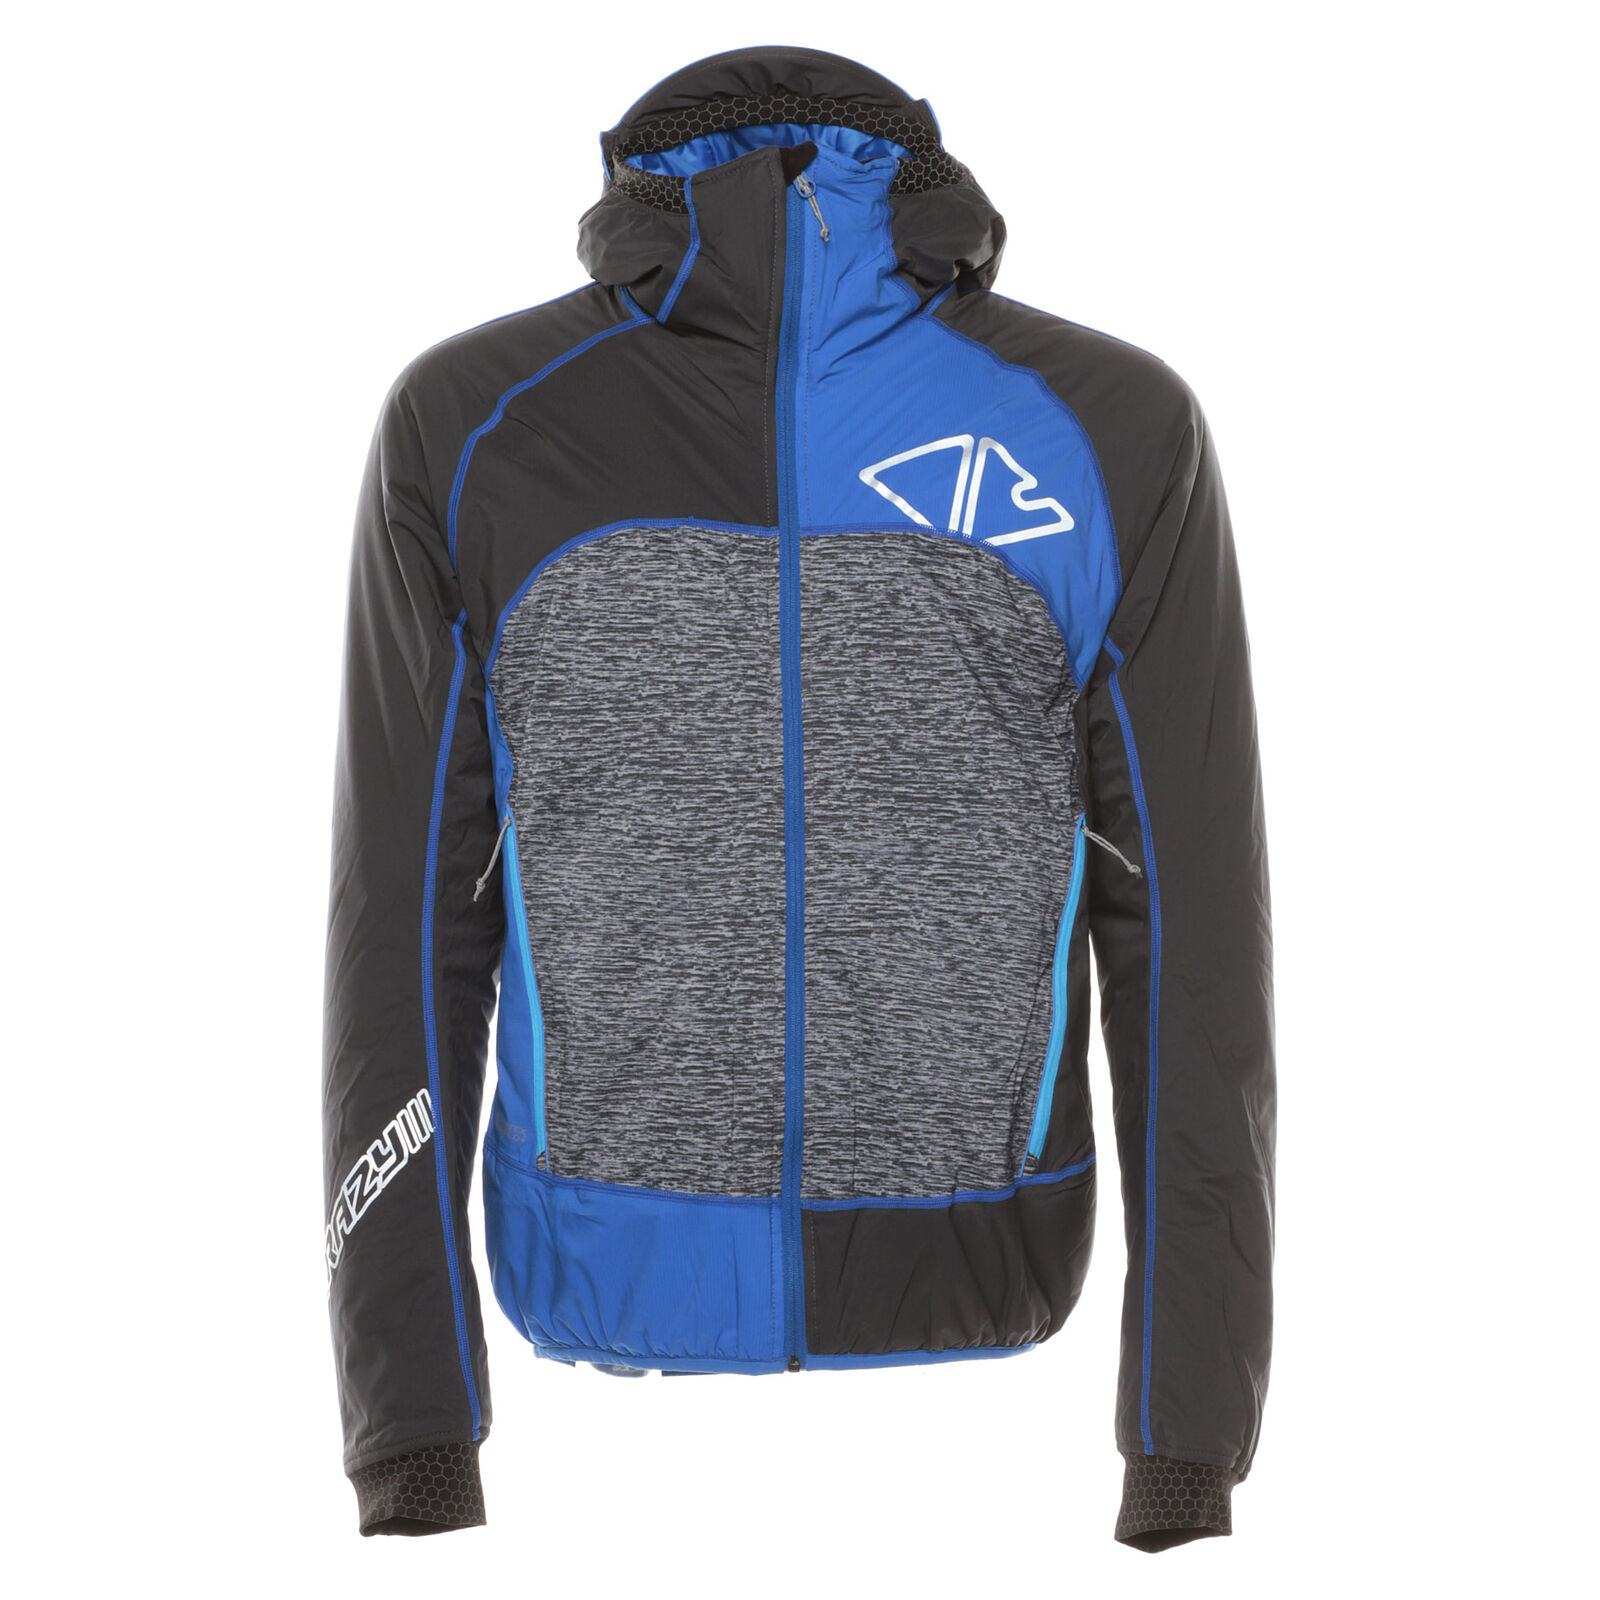 CRAZY IDEA JACKET DIVIDE MAN GIACCA SPORTIVA UOMO W17055154U V3